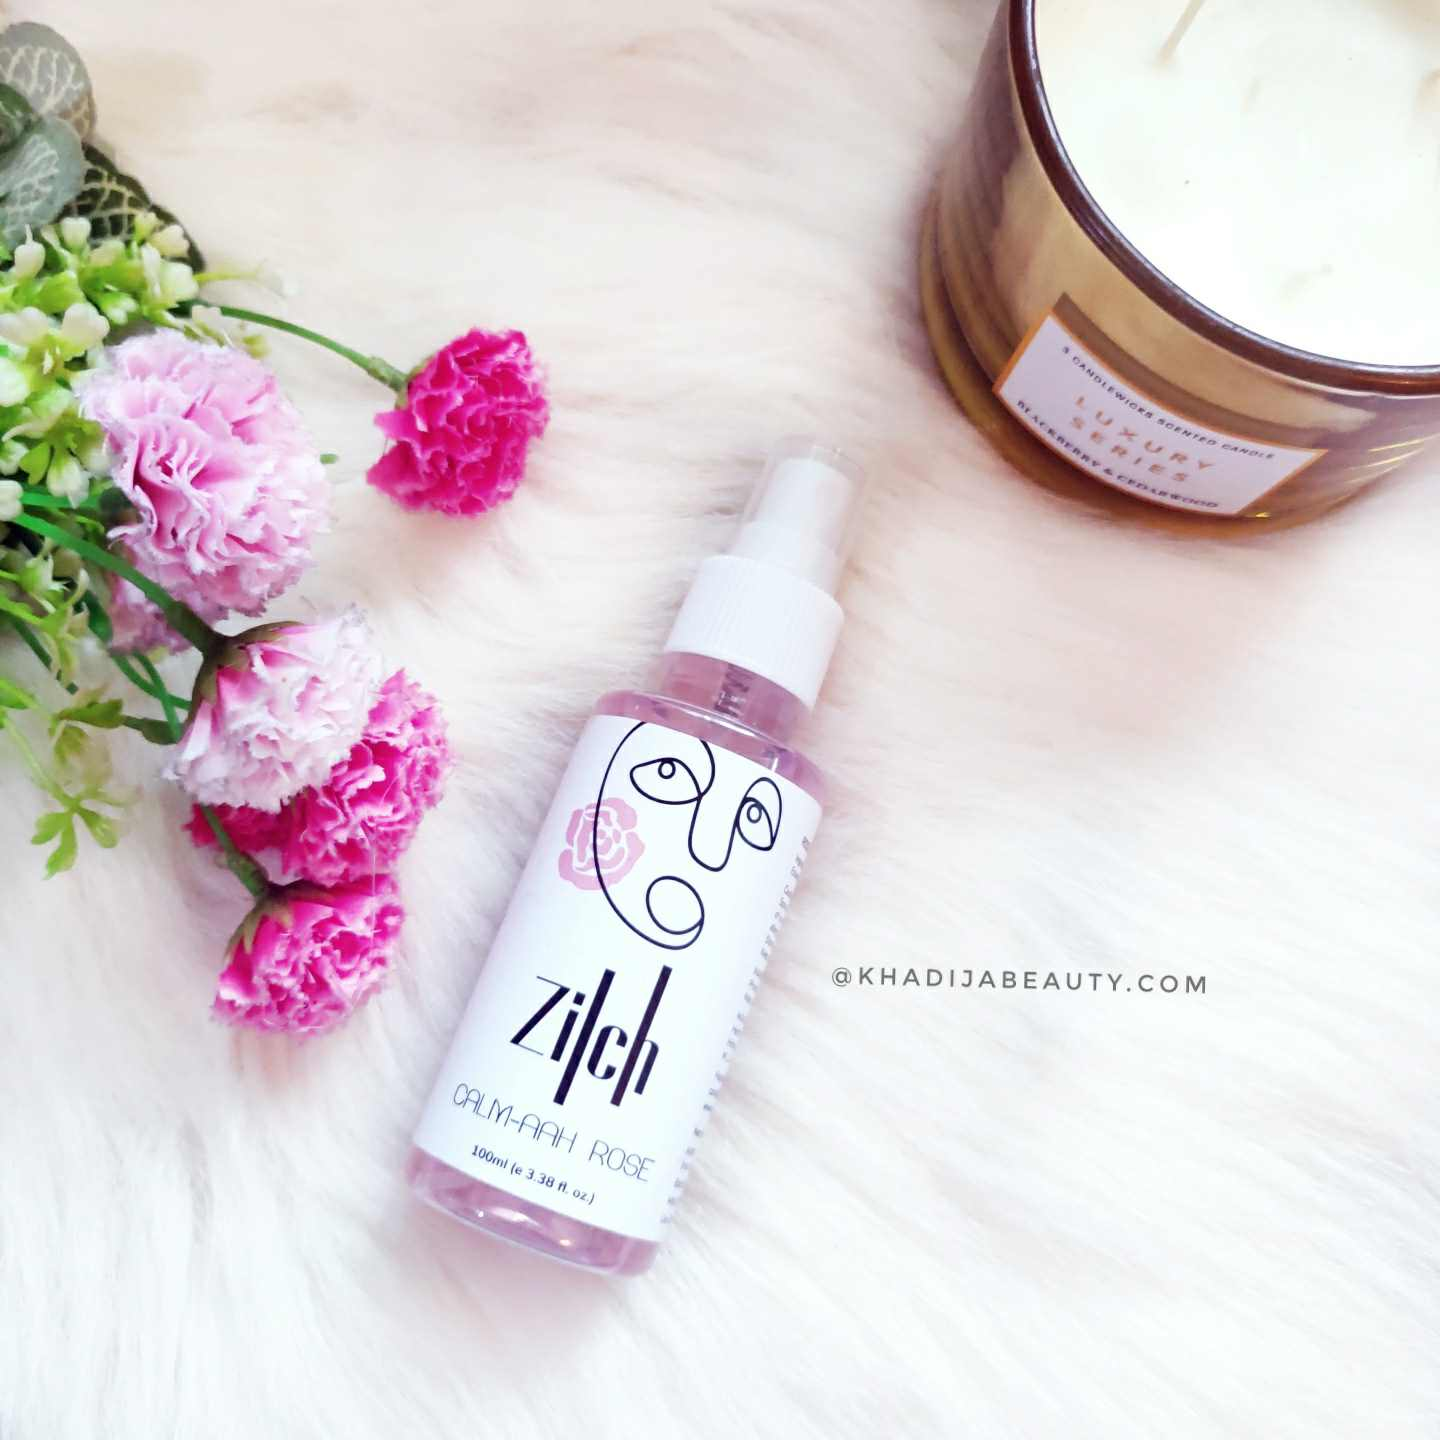 Zilch calm-aah rose hydrating face mist